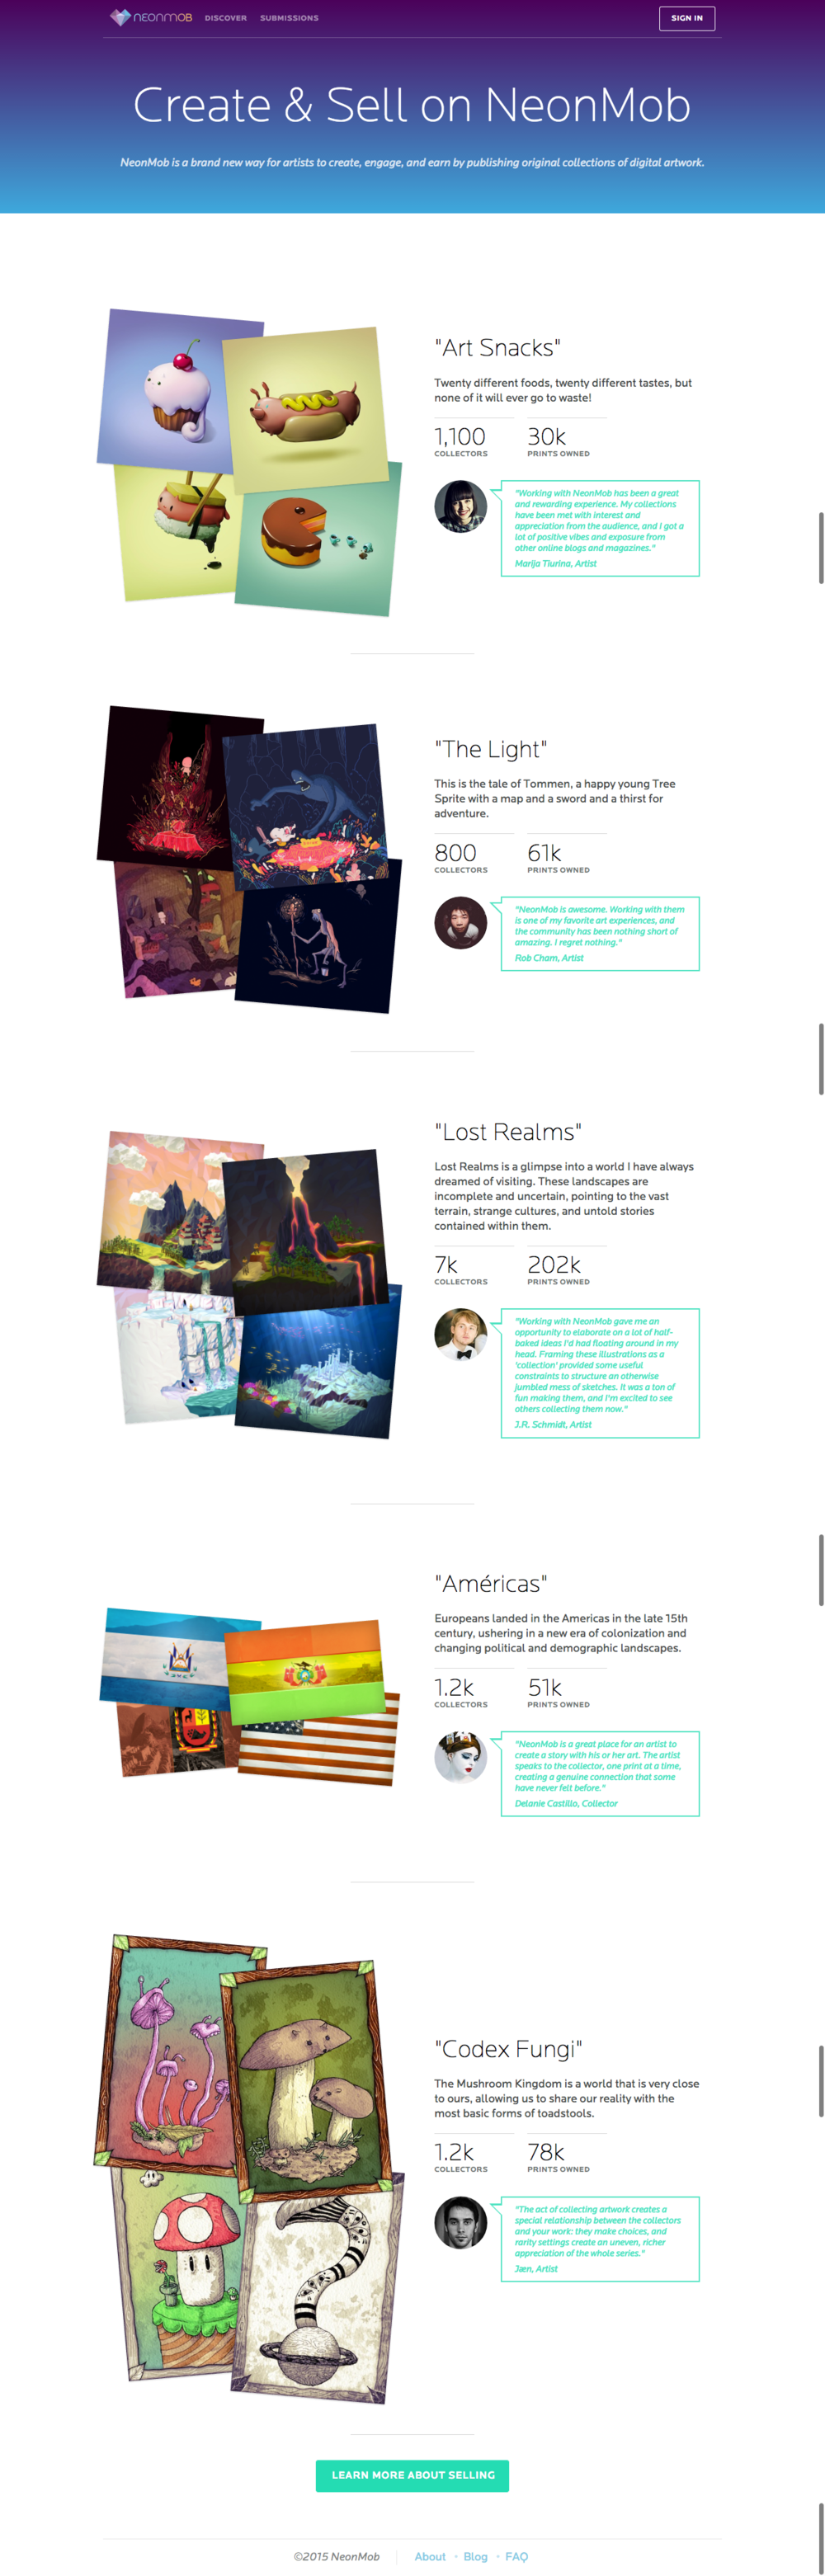 The new artiststories page